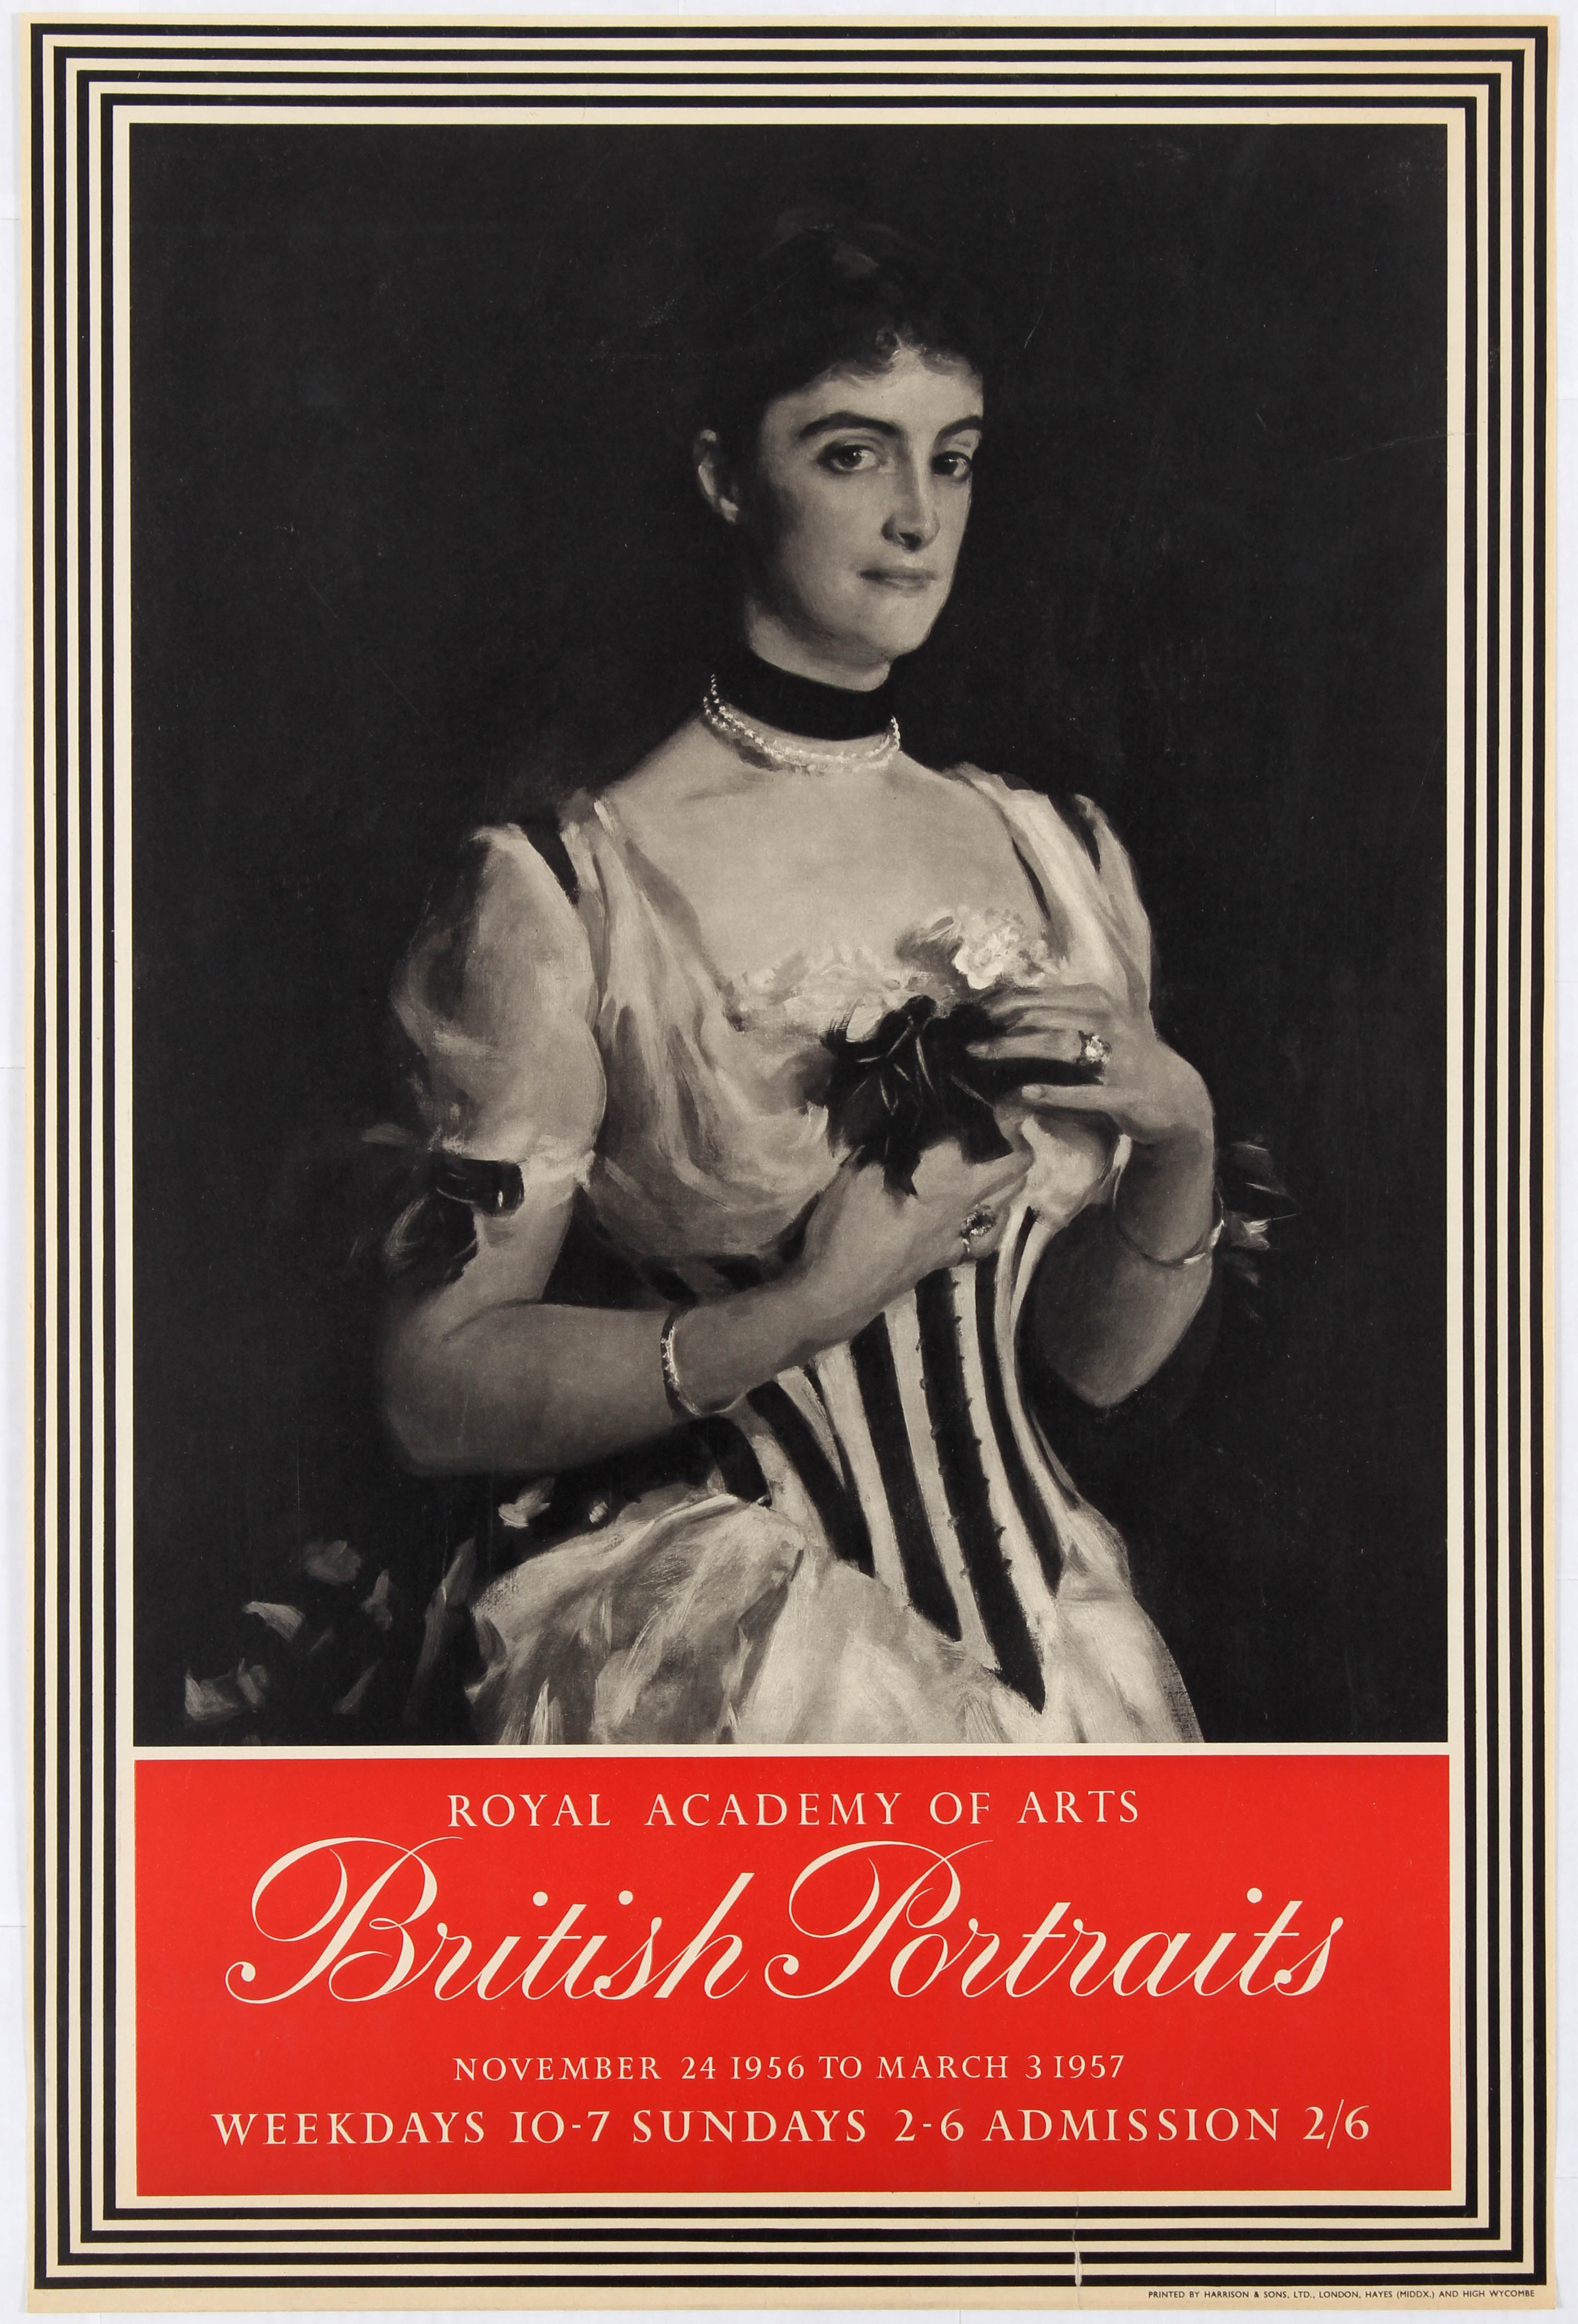 Lot 1509 - Advertising Poster Royal Academy of Arts British Portraits